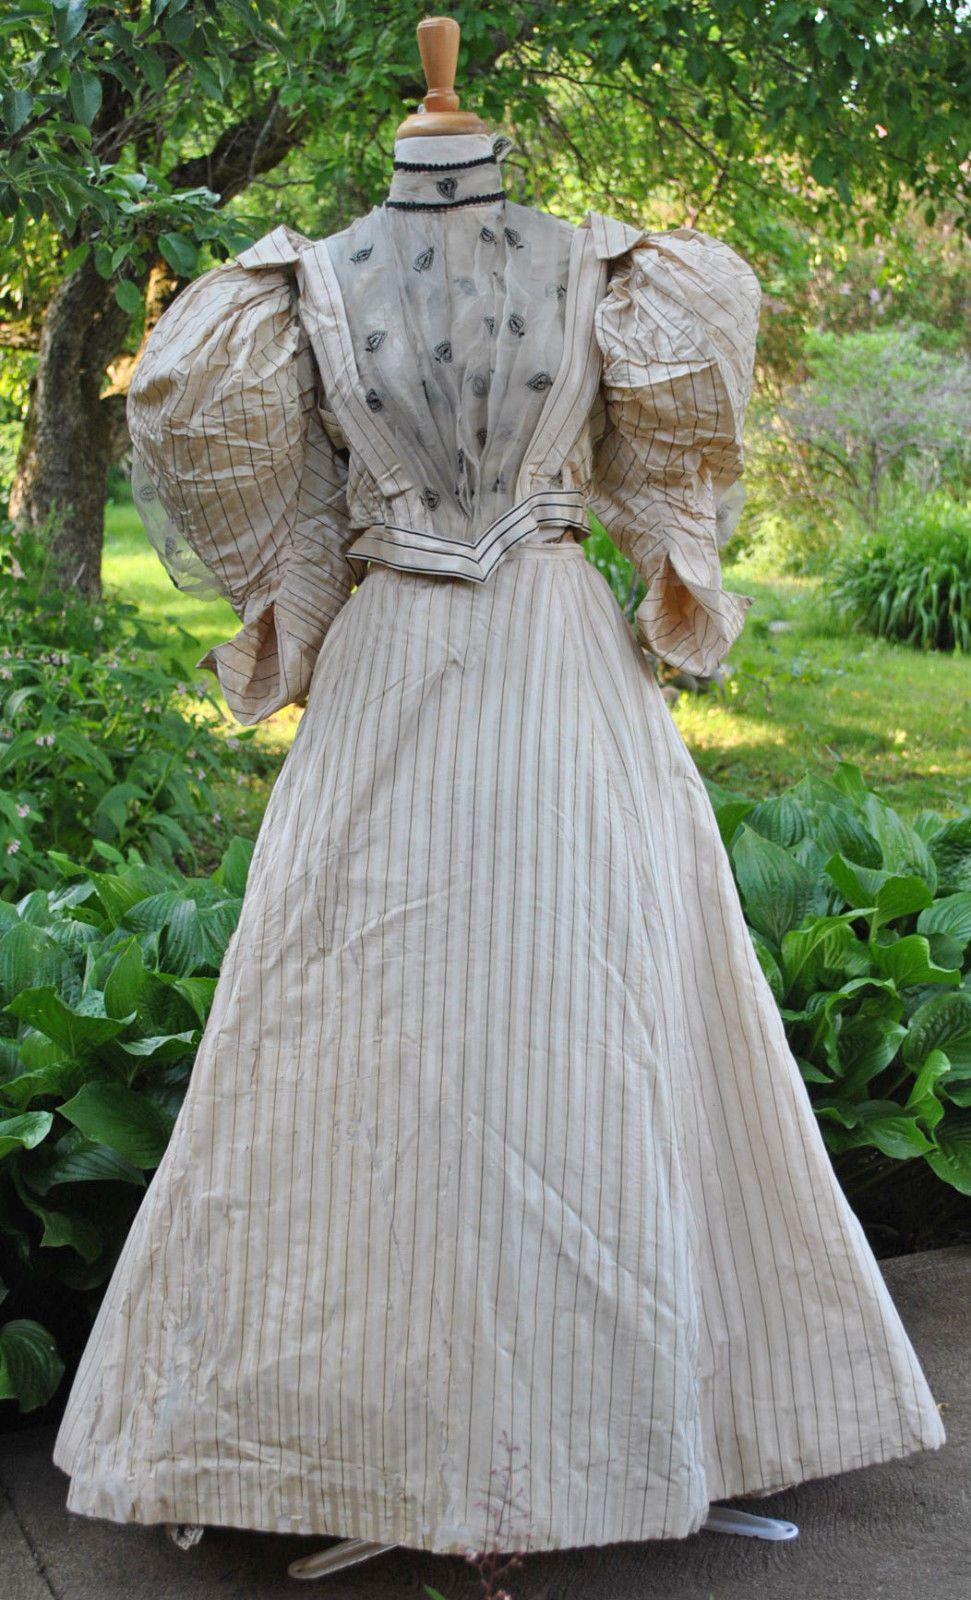 Extant Garments Gowns Dresses Outfits Antique History Historical Textiles Fashion Victorian Edwardian 18 1890 Fashion 1890s Day Dress Antique Dress [ 1600 x 971 Pixel ]